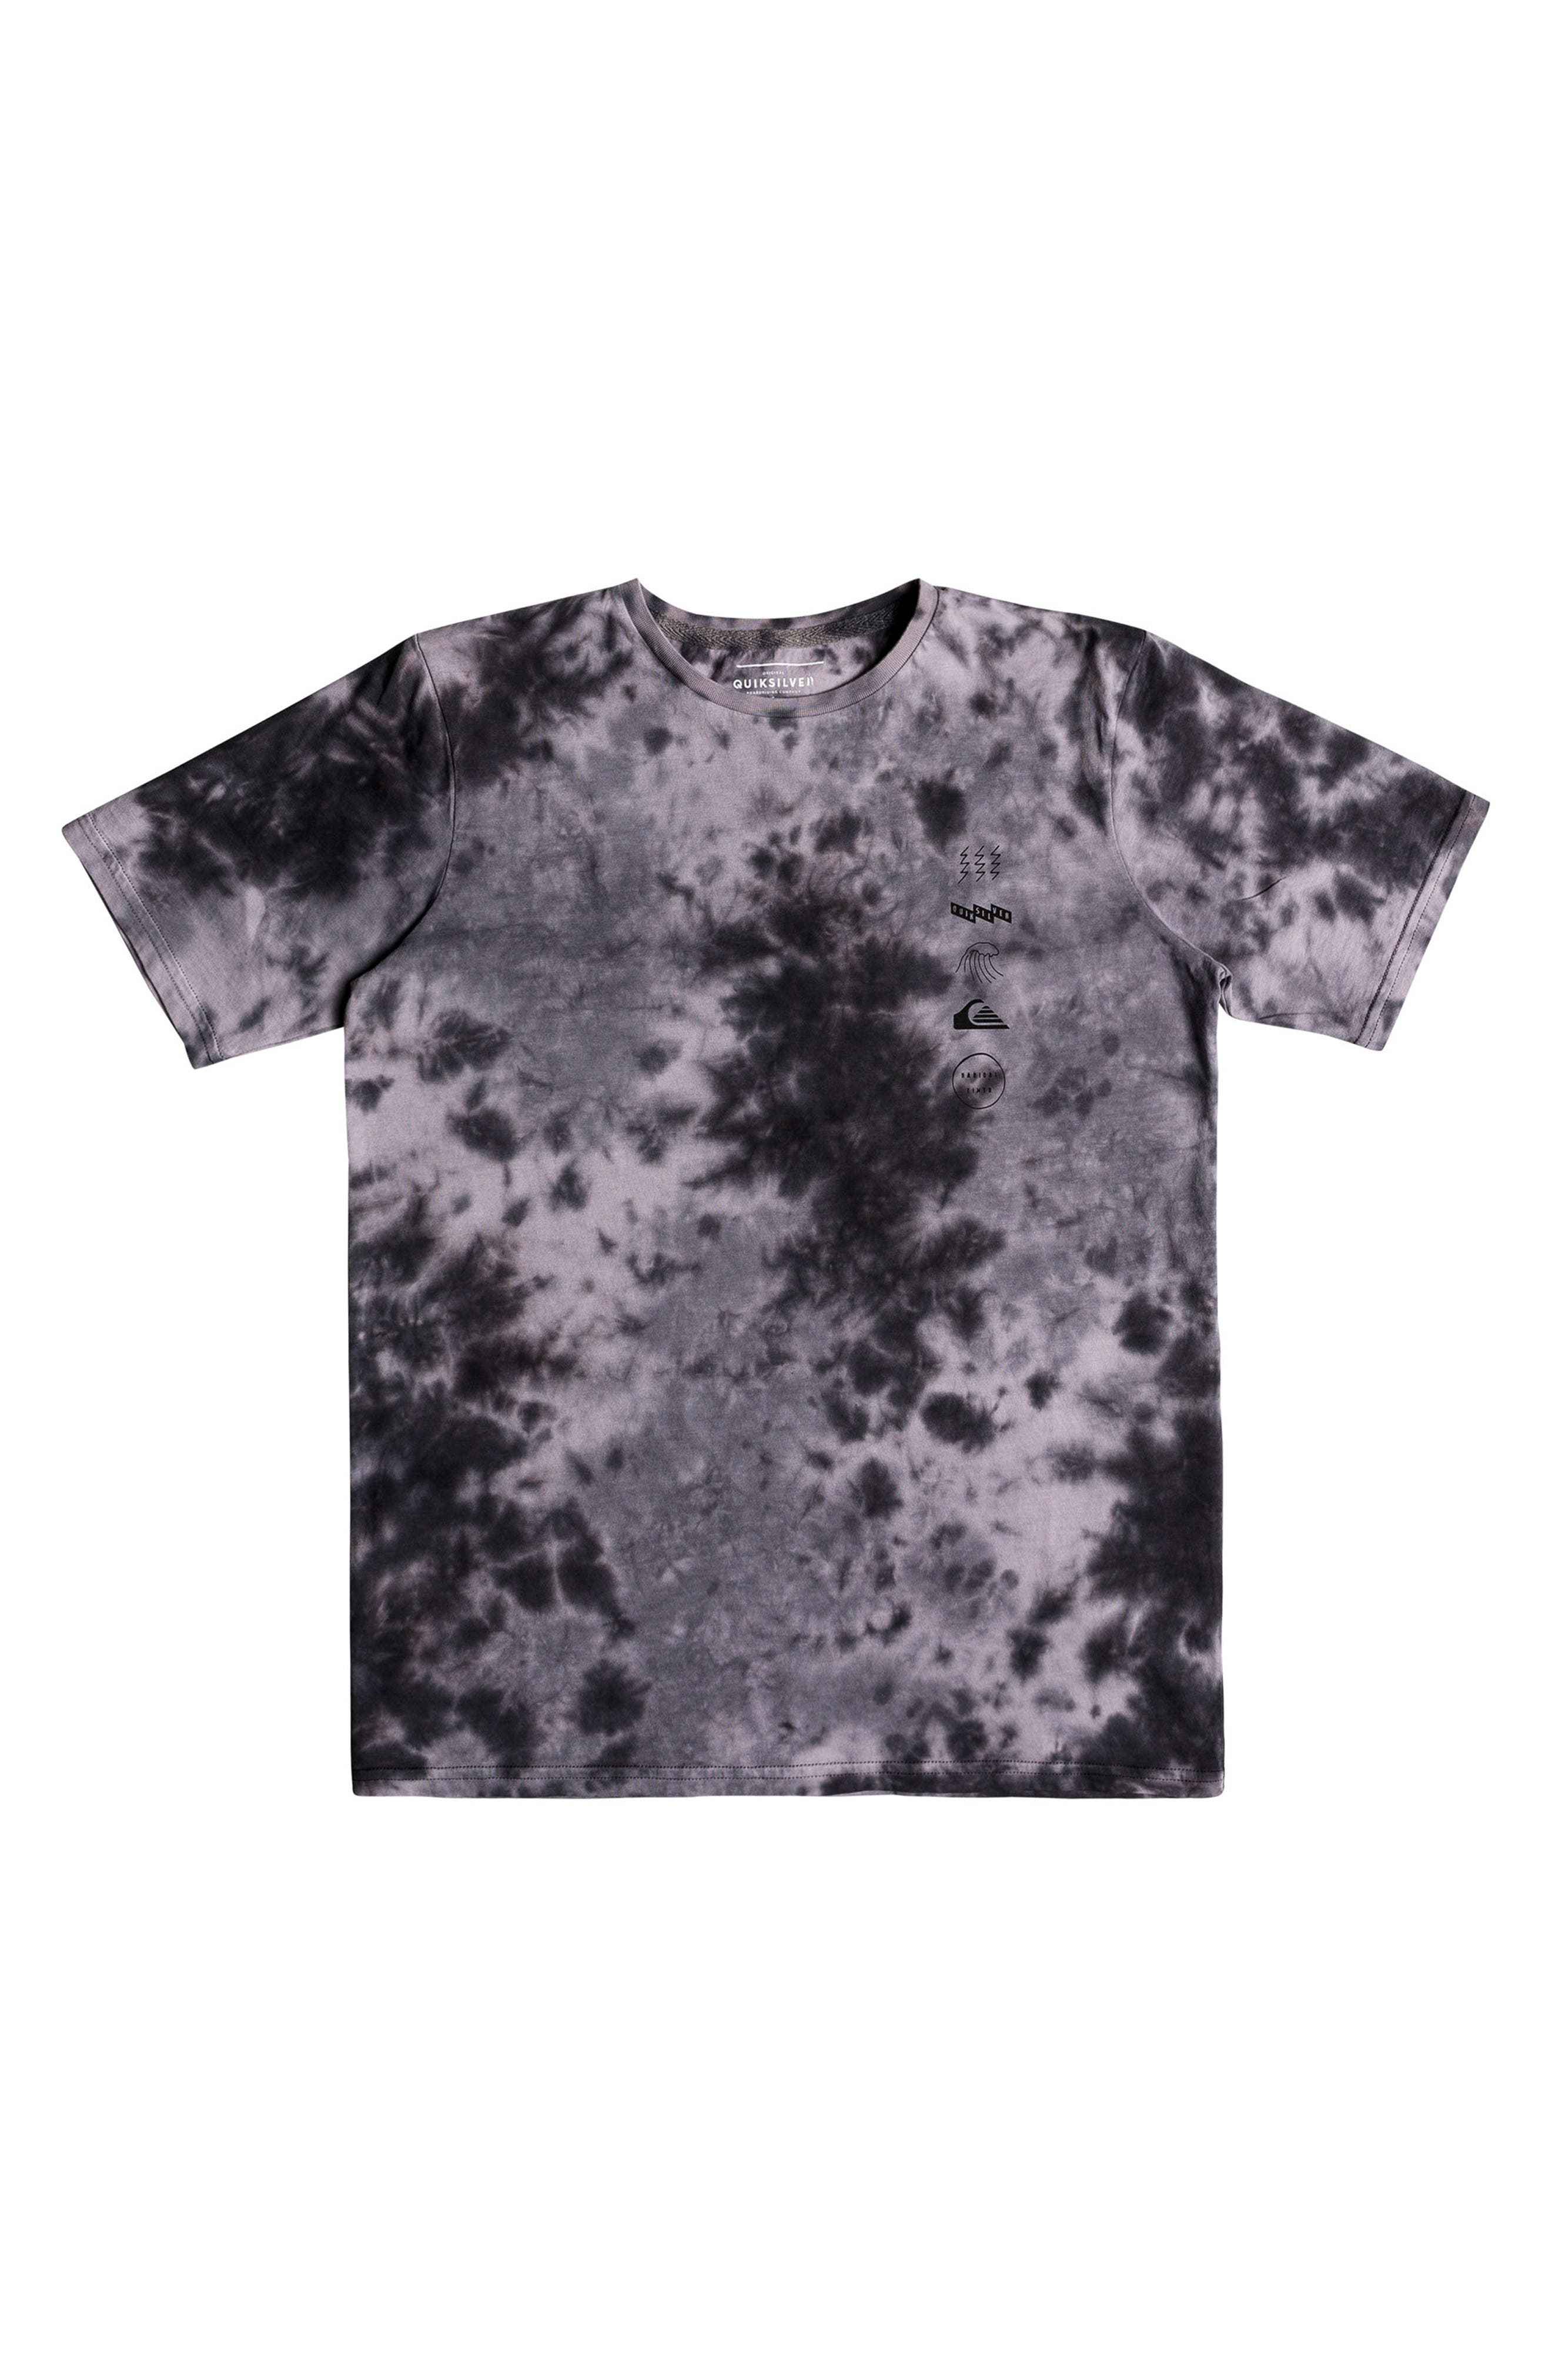 Gibus Moon Graphic T-Shirt,                         Main,                         color, Iron Gate Tie Dye